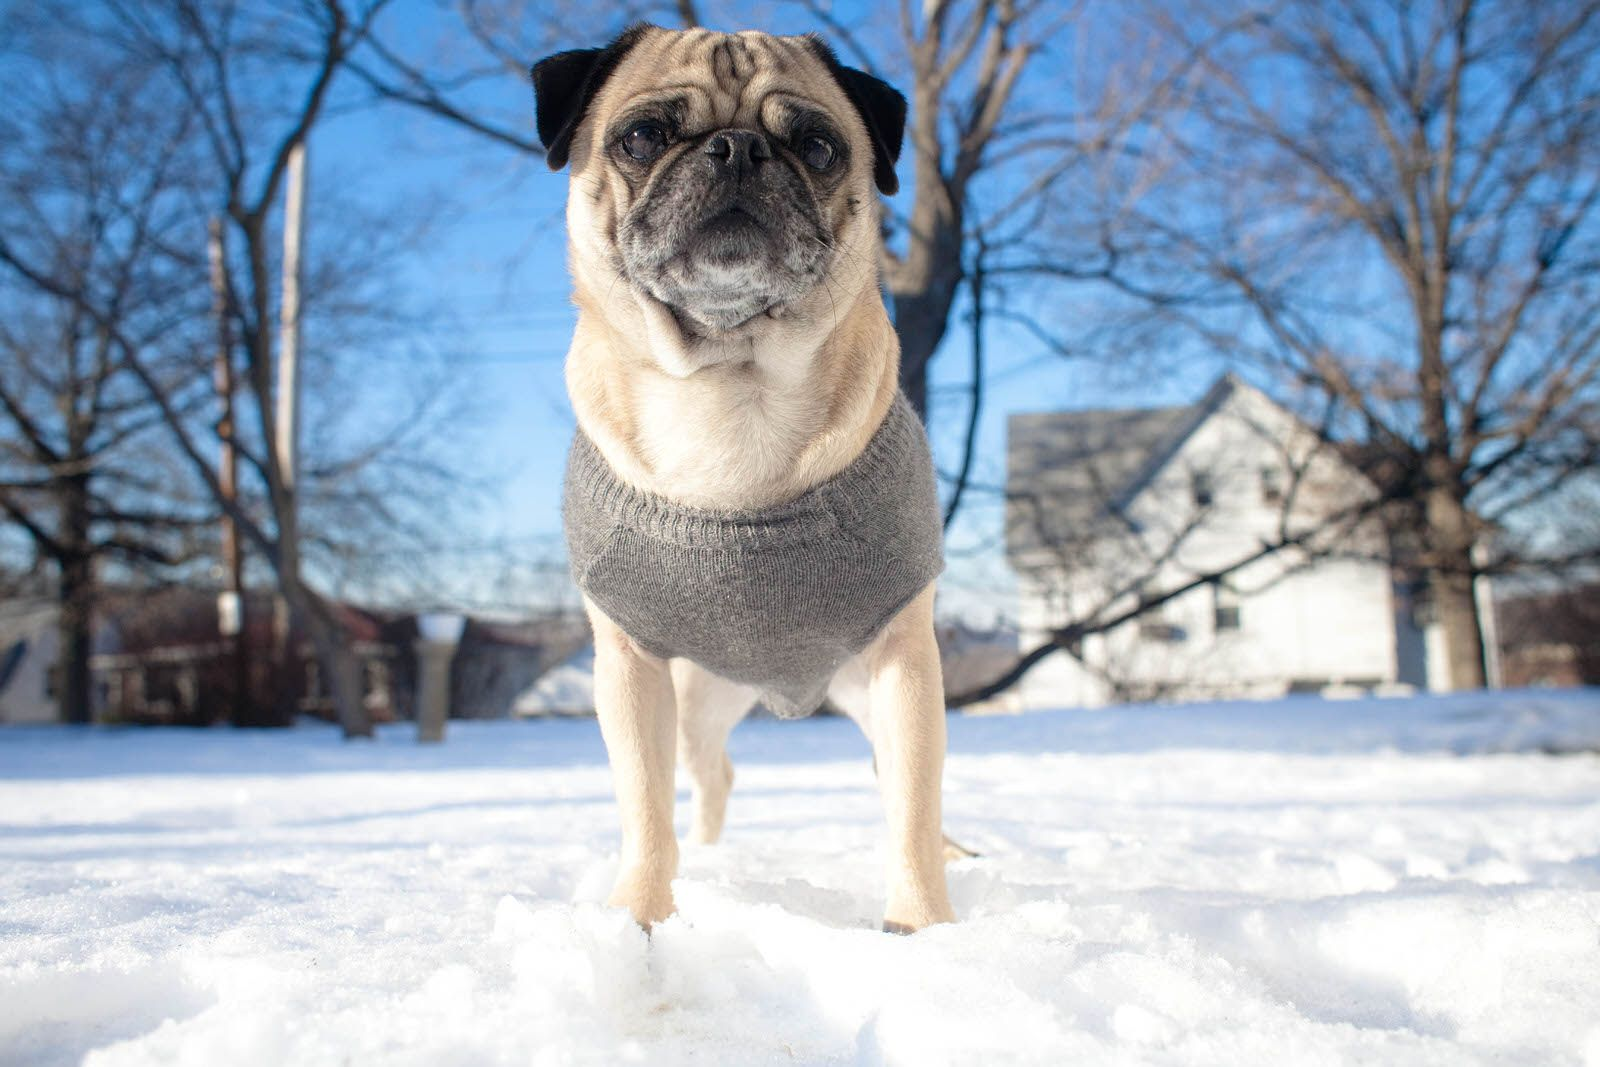 Miyagi Was The Most Popular Pug He Was Loved By So Many Humans